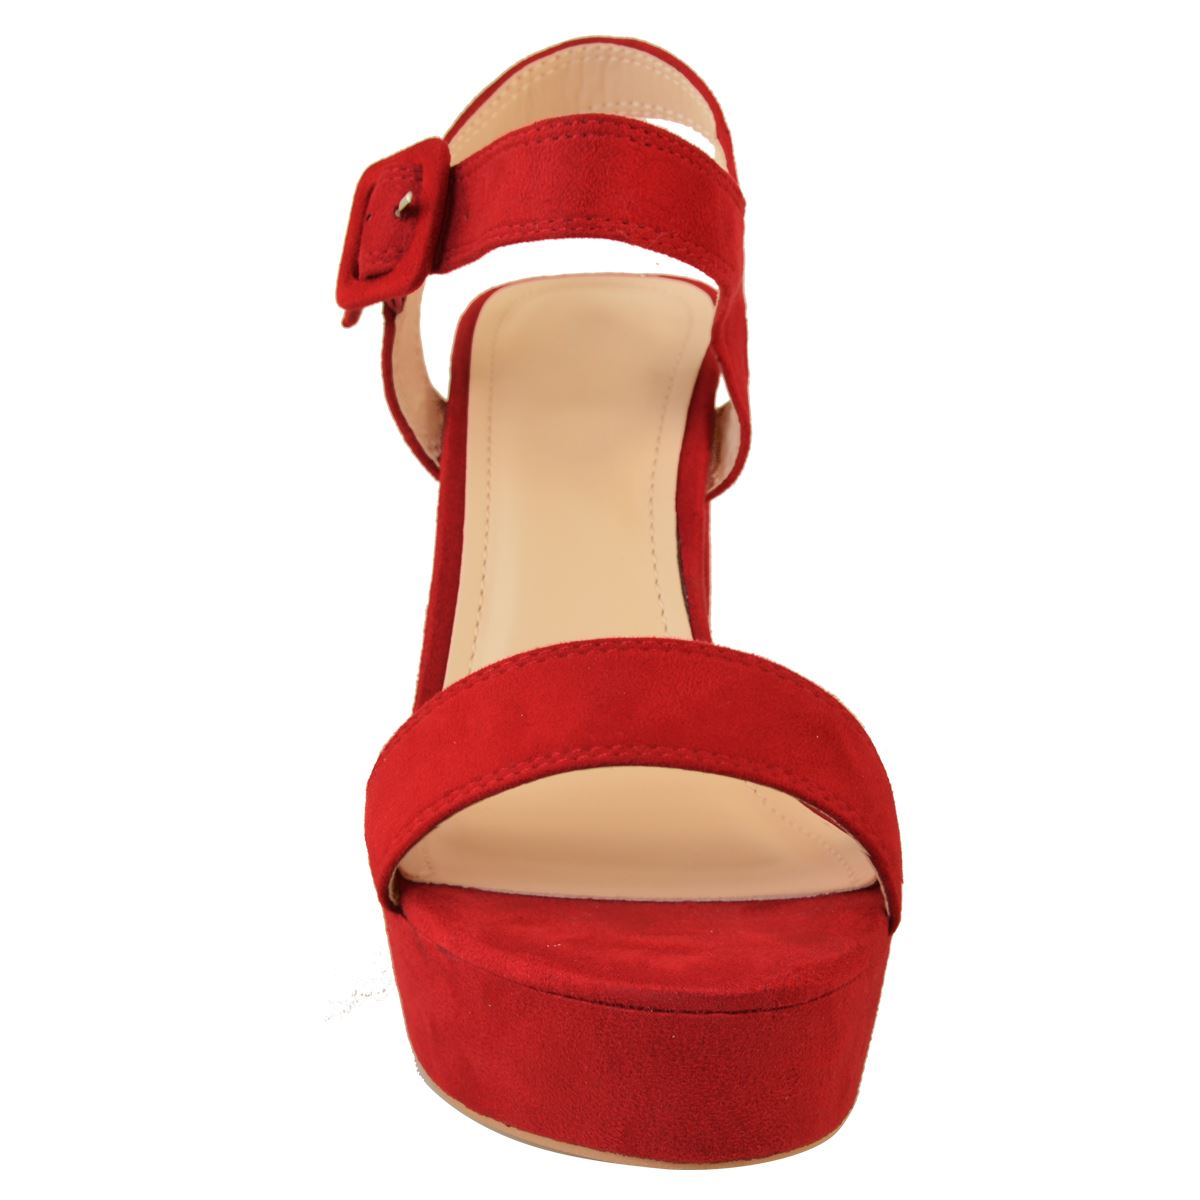 New-Womens-Summer-Platform-High-Heel-Sandals-Ladies-Open-Toe-Strappy-Party-Shoes thumbnail 41